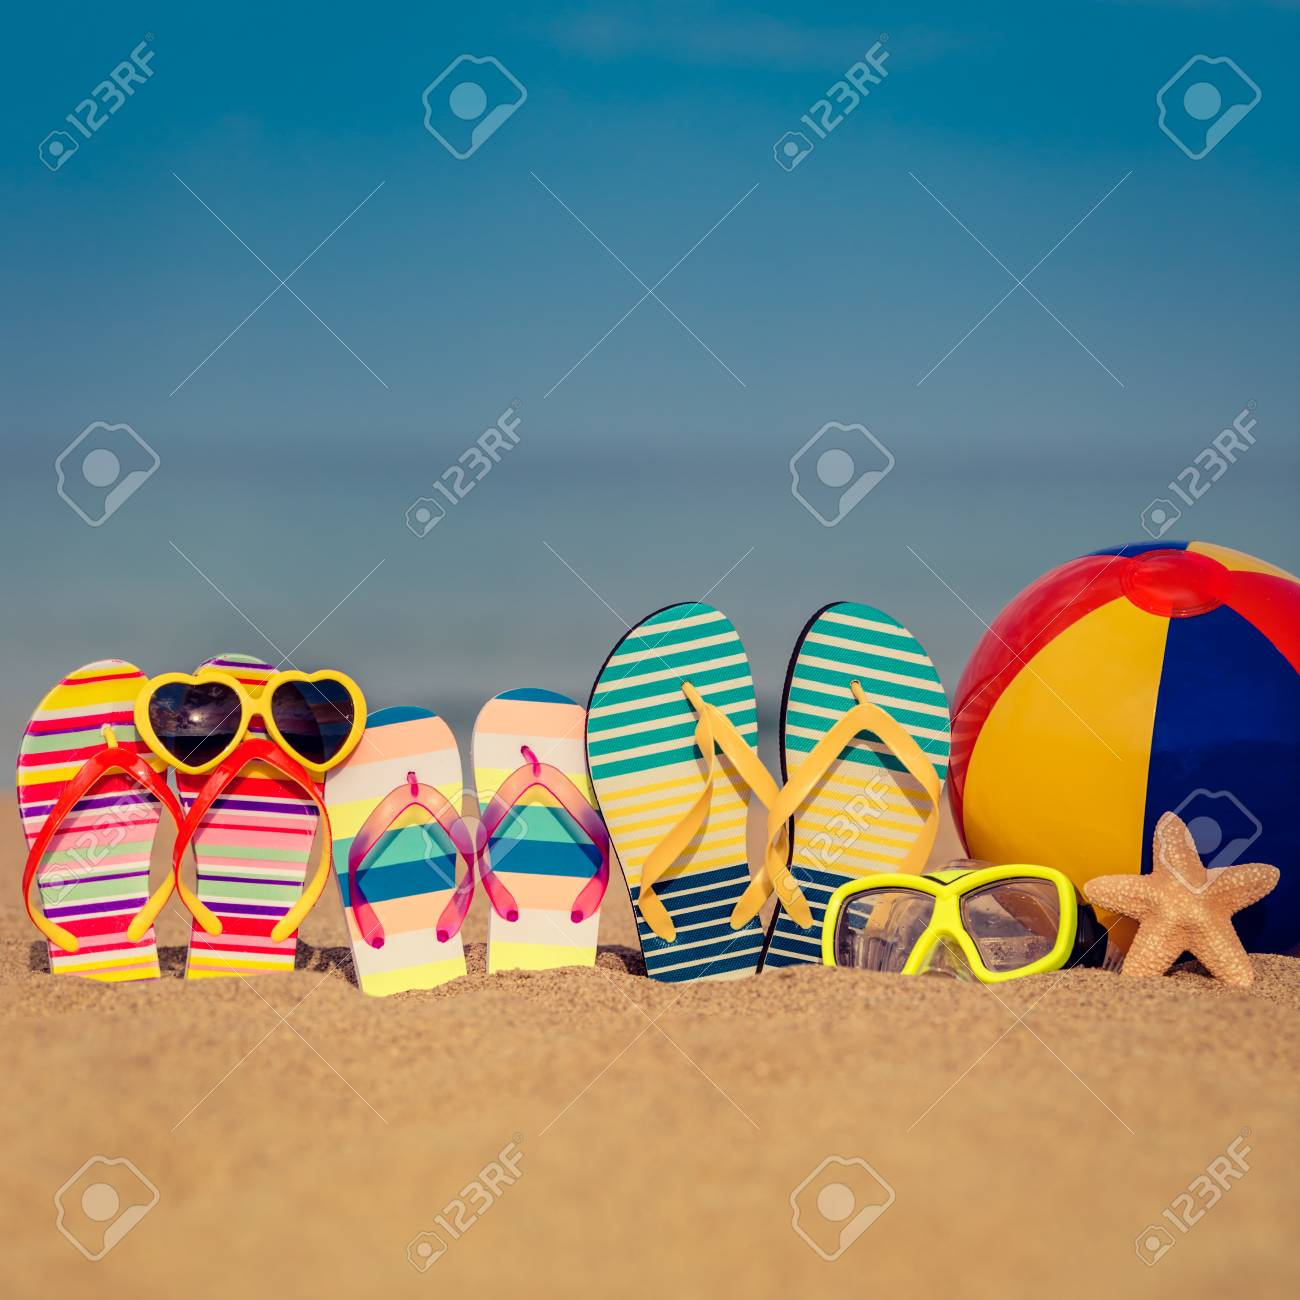 1352d6bc7735 Flip-flops on sandy beach against blue sea and sky background. Summer  vacation concept